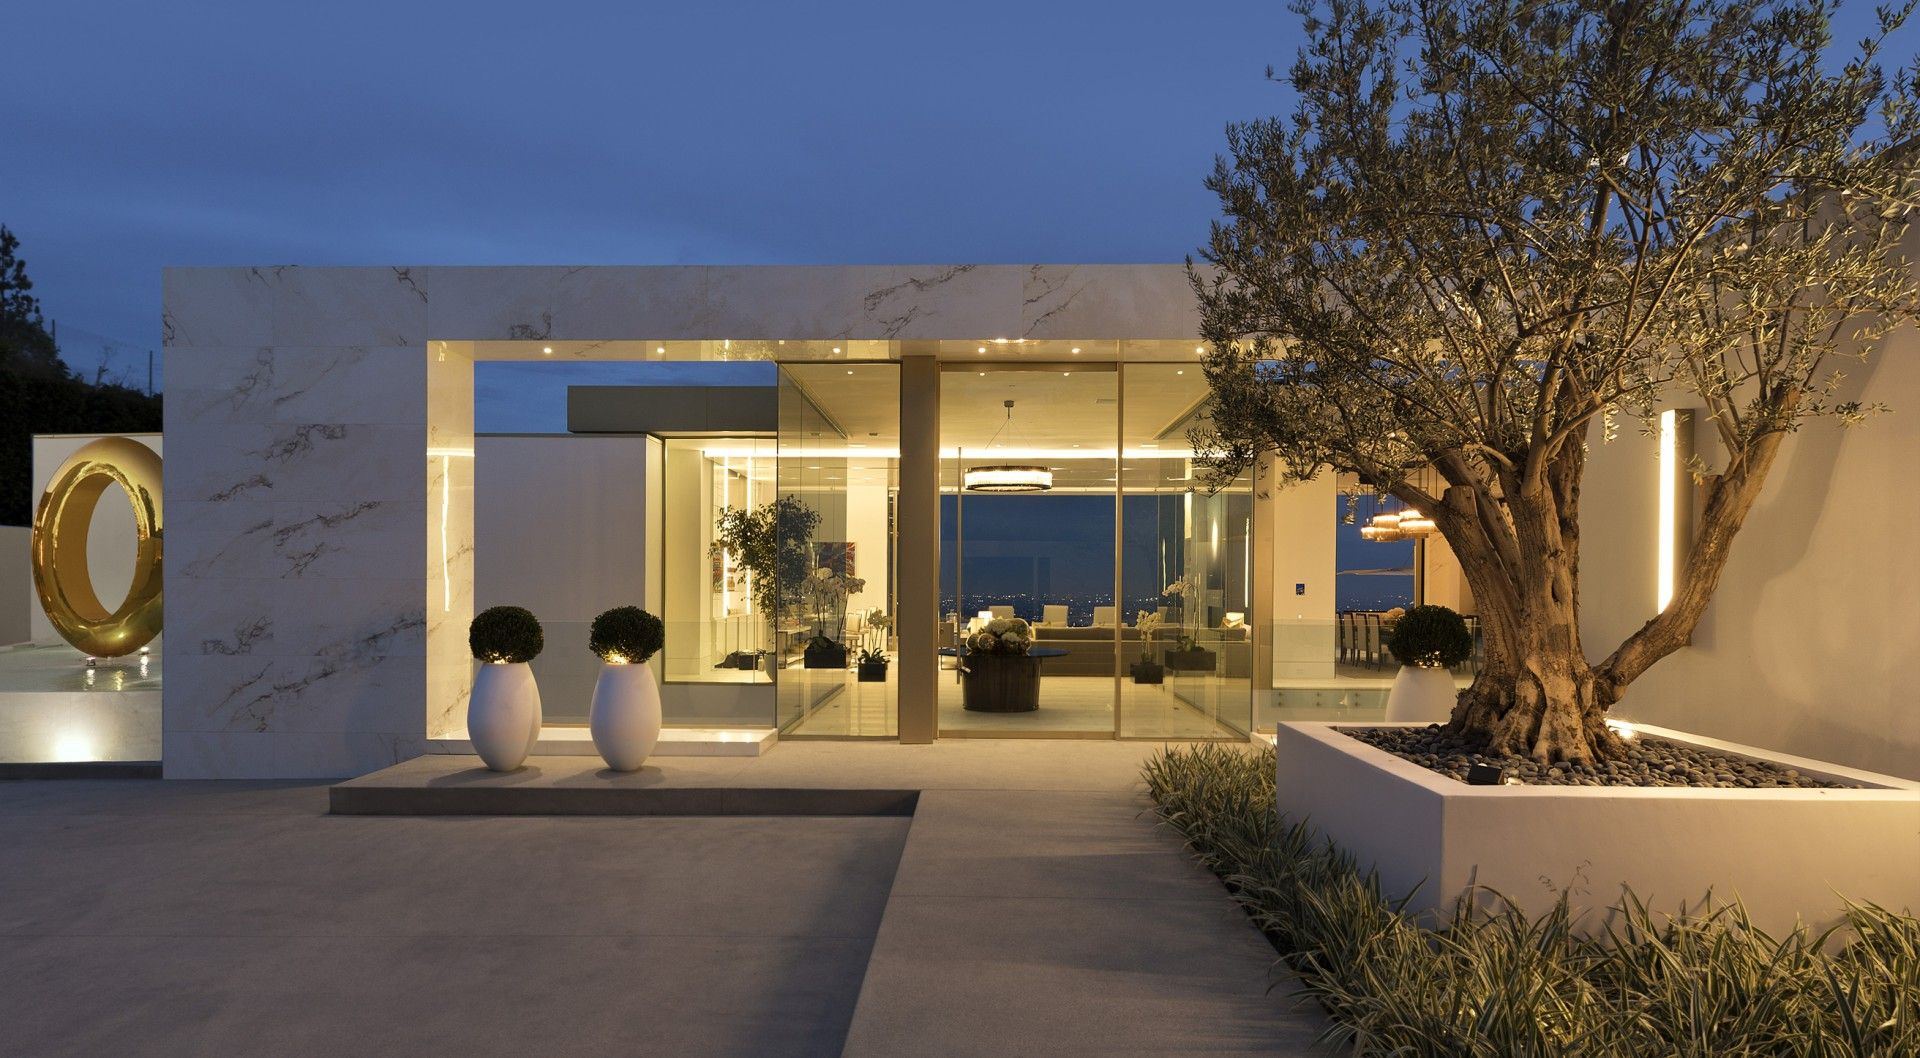 Los Angeles, Laguna Beach Architecture Contemporary Projects ...